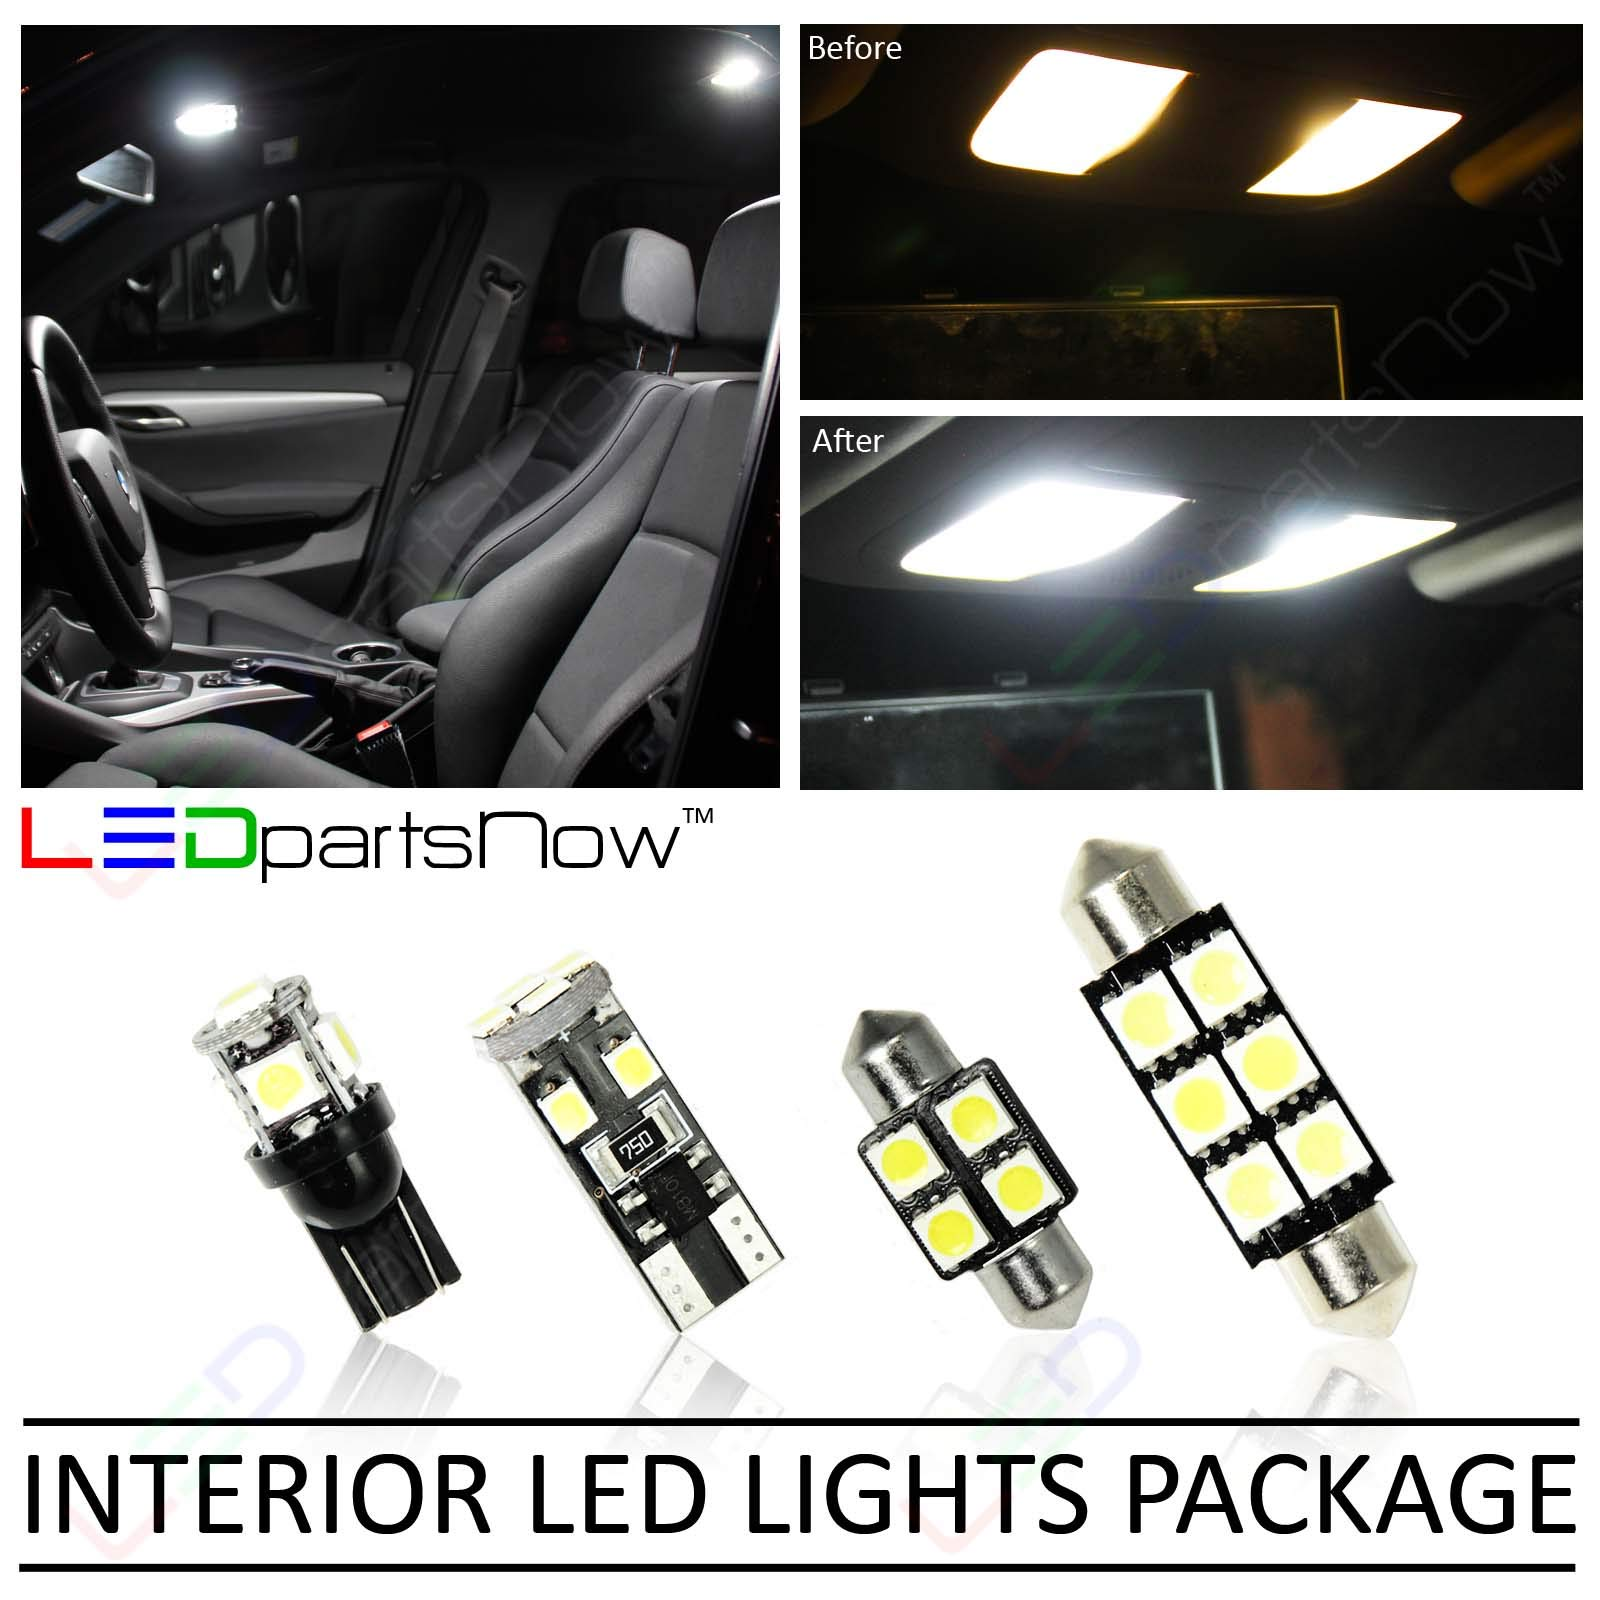 LEDpartsNow Interior LED Lights Replacement for 2009-2013 Honda Fit Jazz Accessories Package Kit (6 Bulbs), WHITE